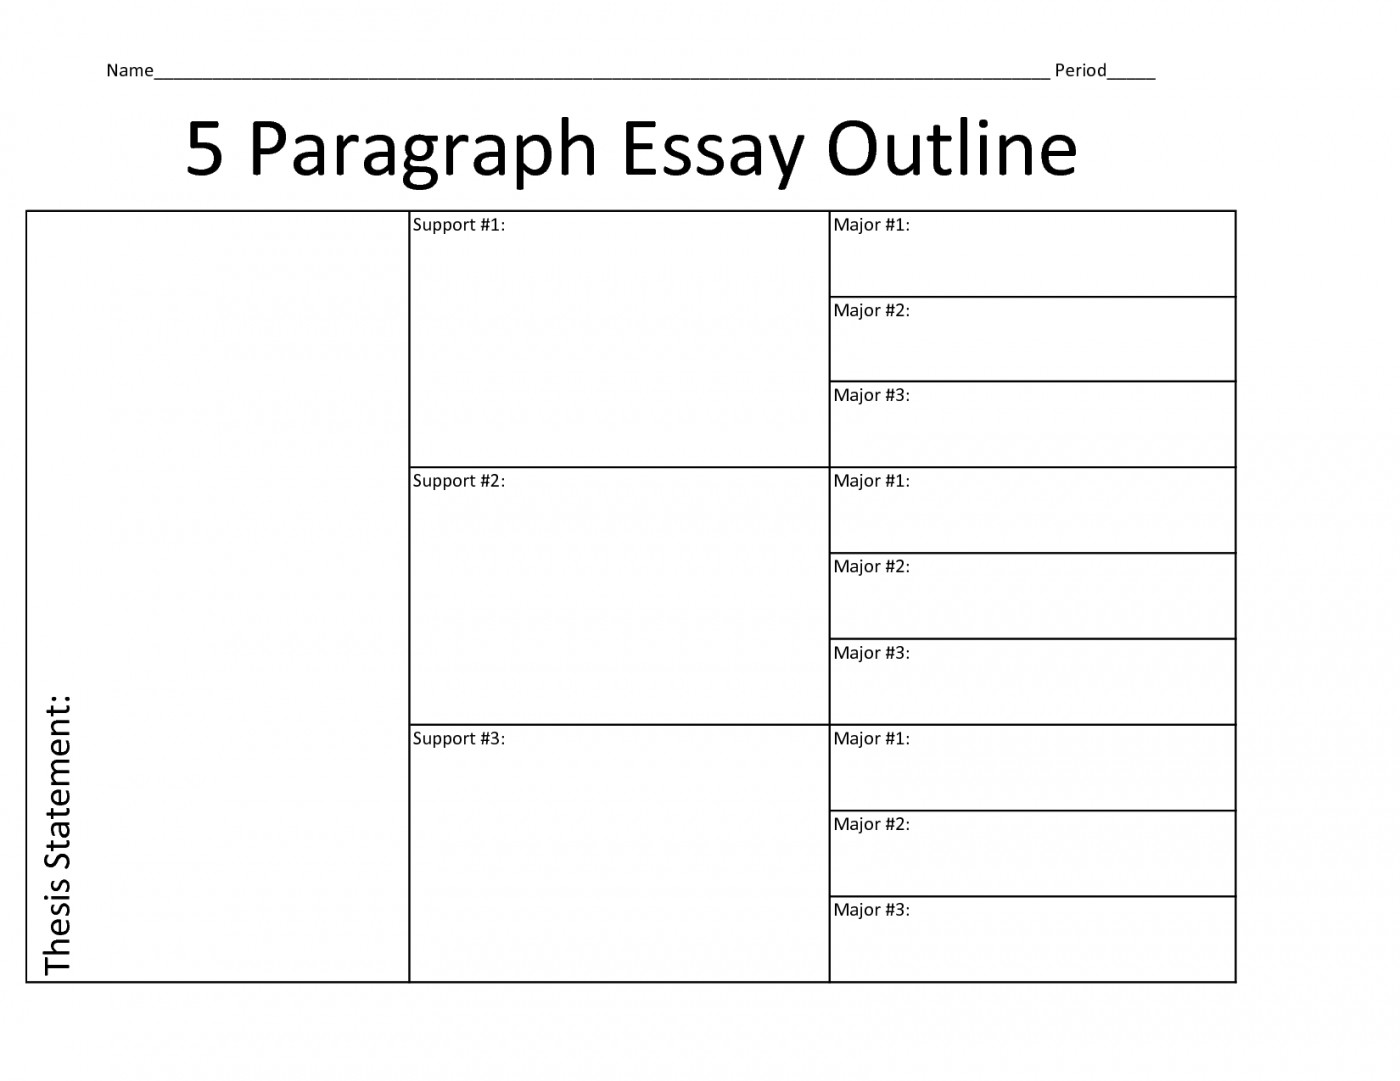 019 Graphic Organizers Executive Functioning Mr Brown039s Paragraph Essay Outline L Amazing 5 Five Pdf Template Printable Topics 5th Grade 1400